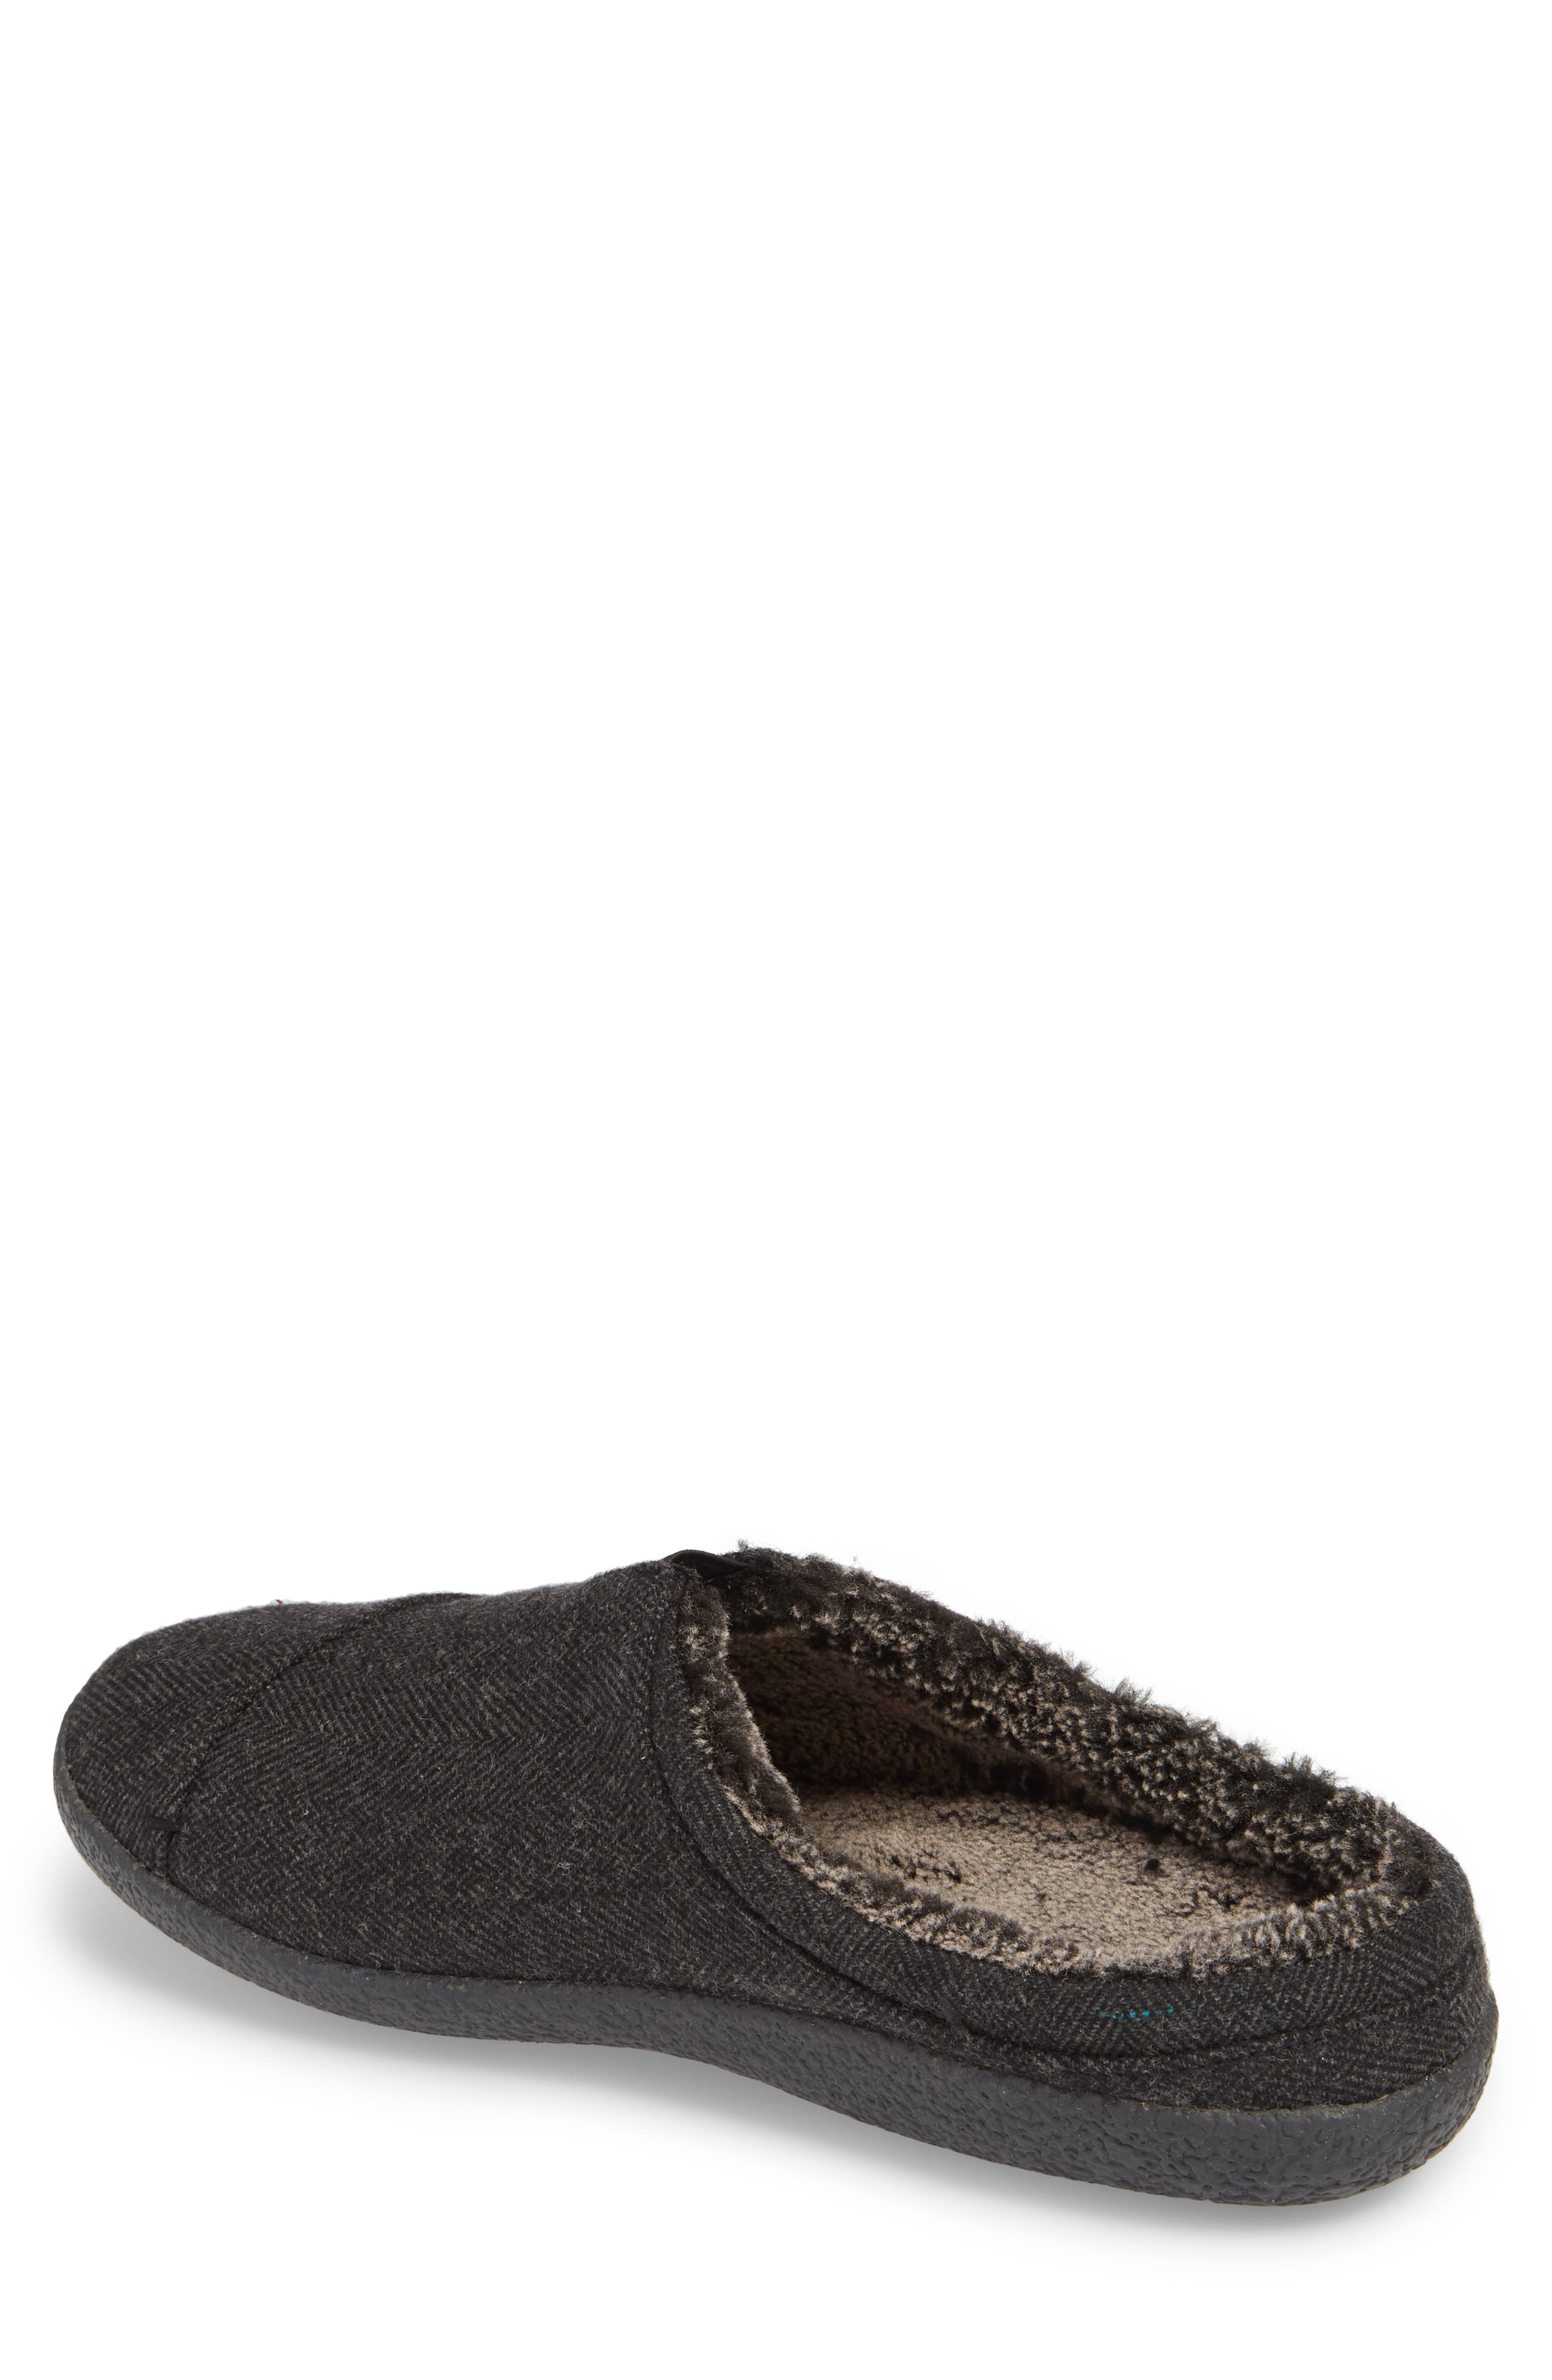 Berkeley Slipper with Faux Fur Lining,                             Alternate thumbnail 2, color,                             001